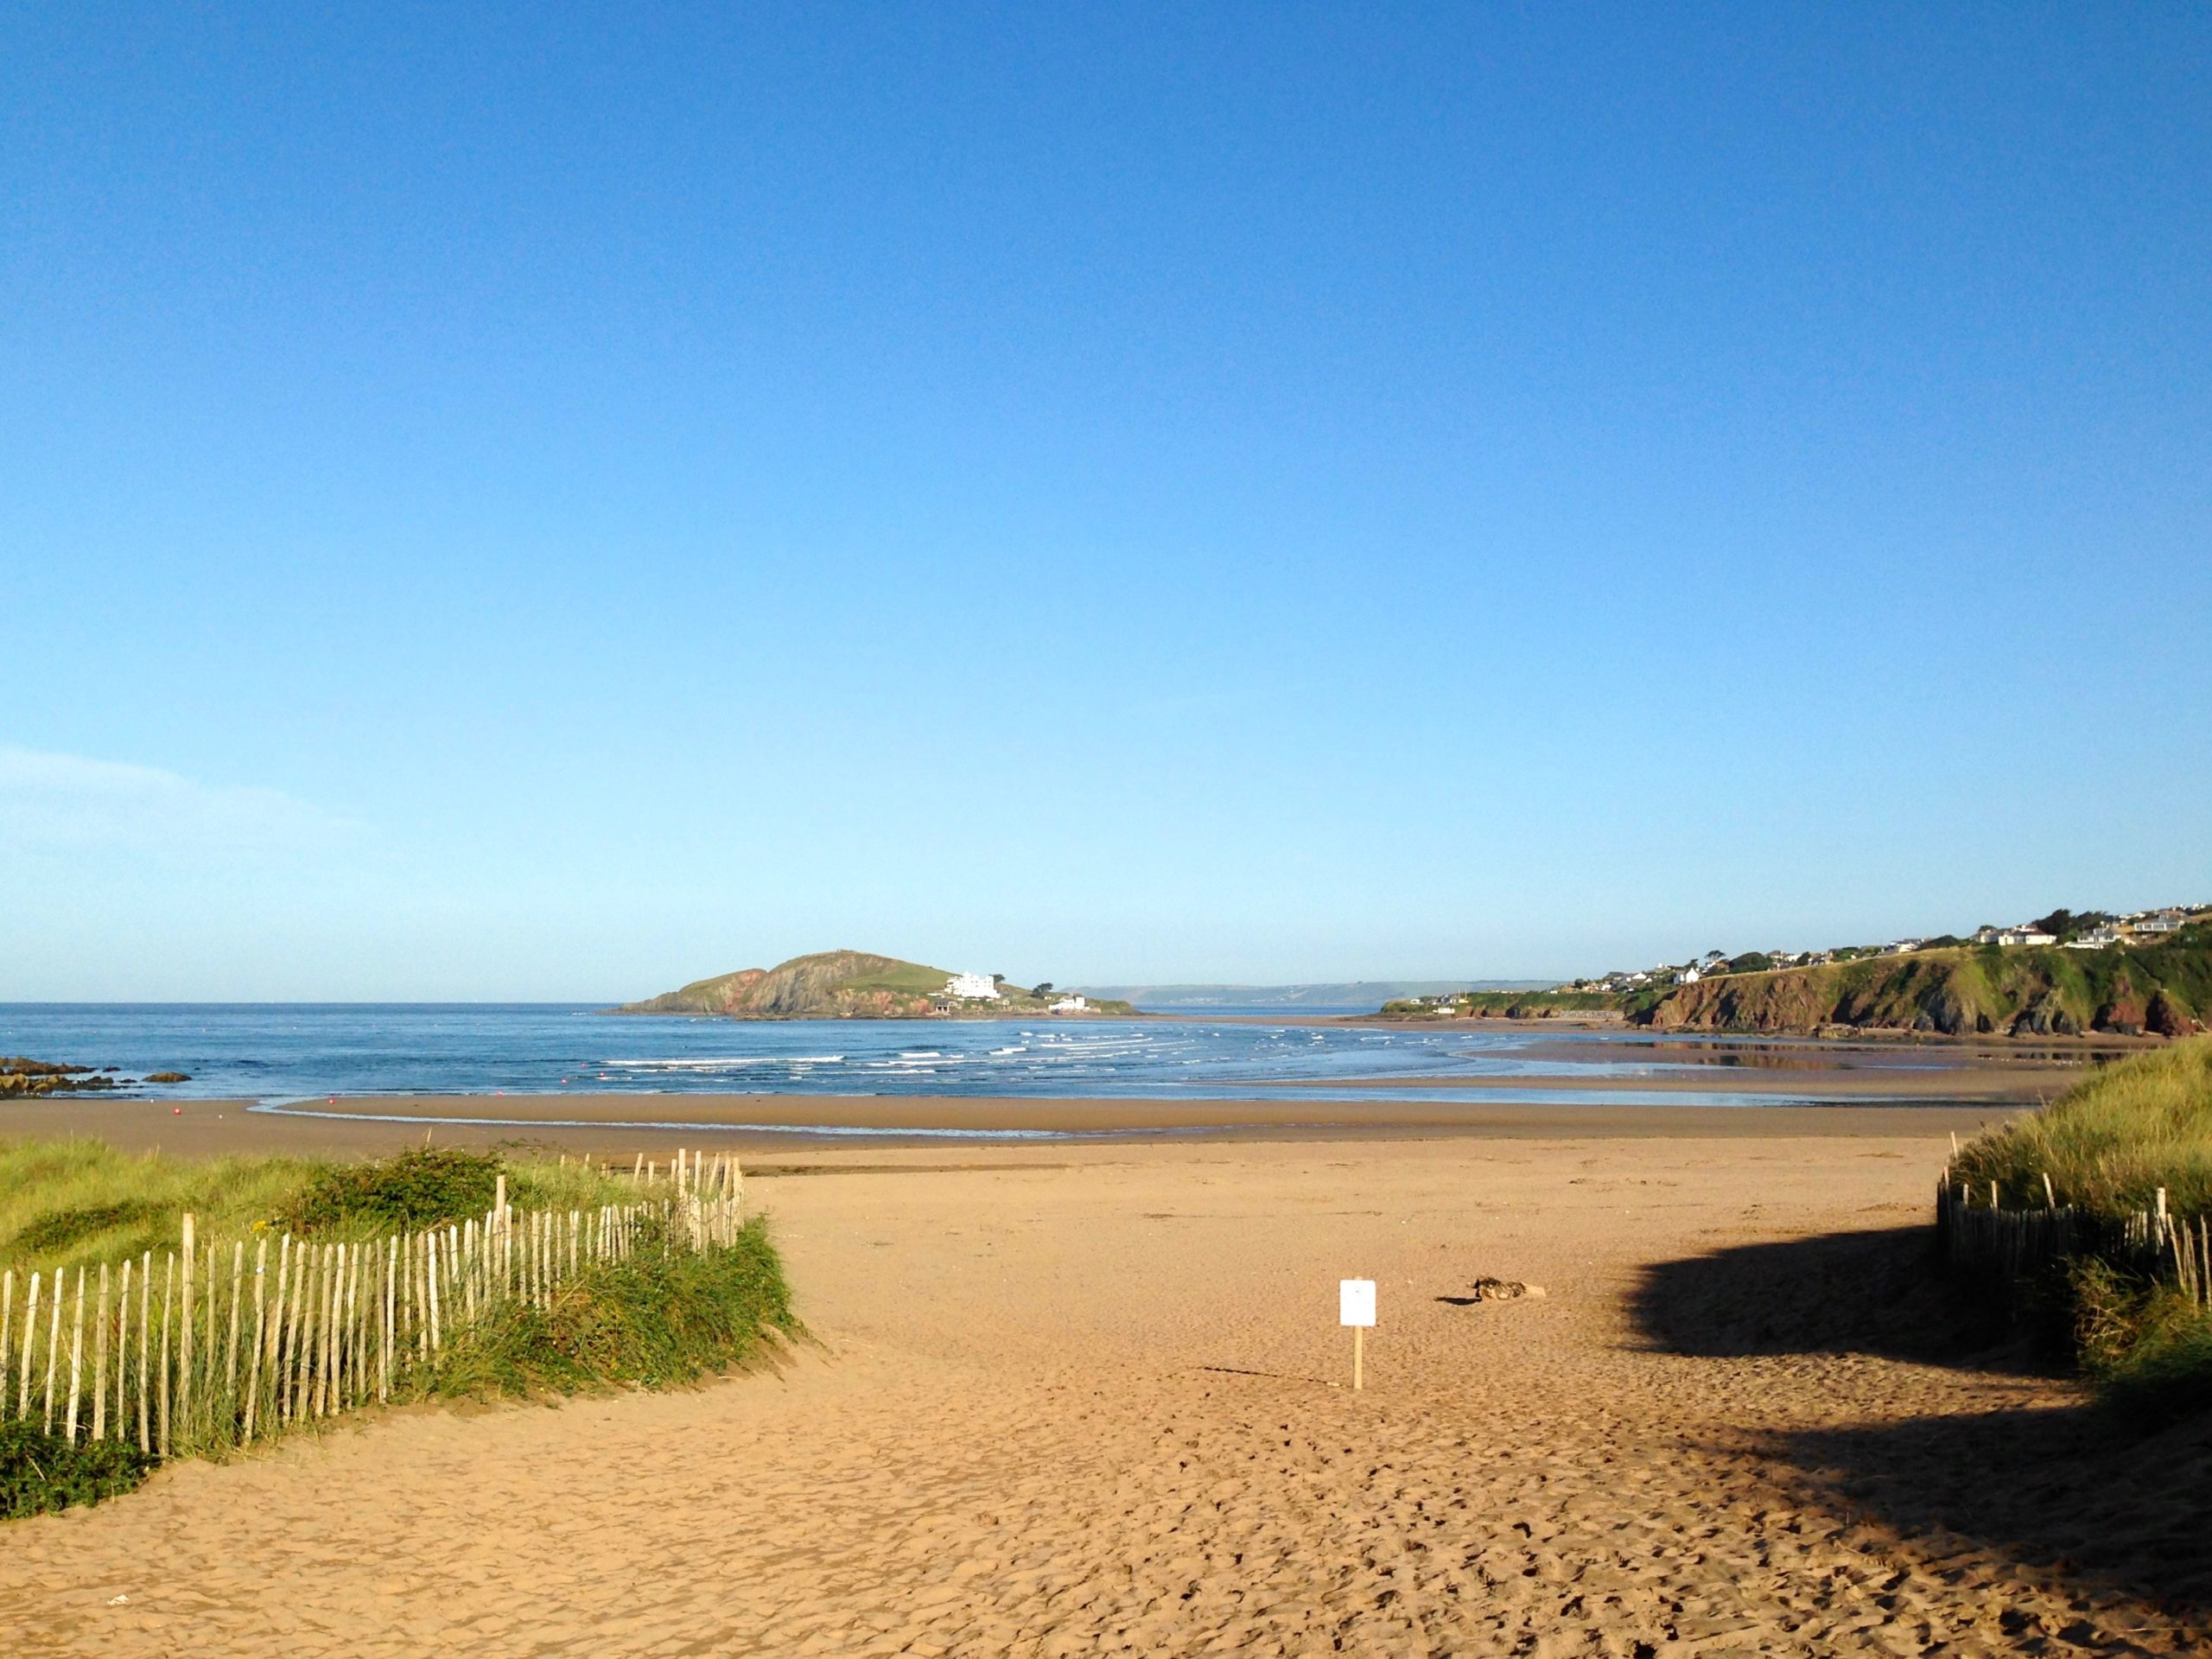 Burgh Island view from Bantham Beach